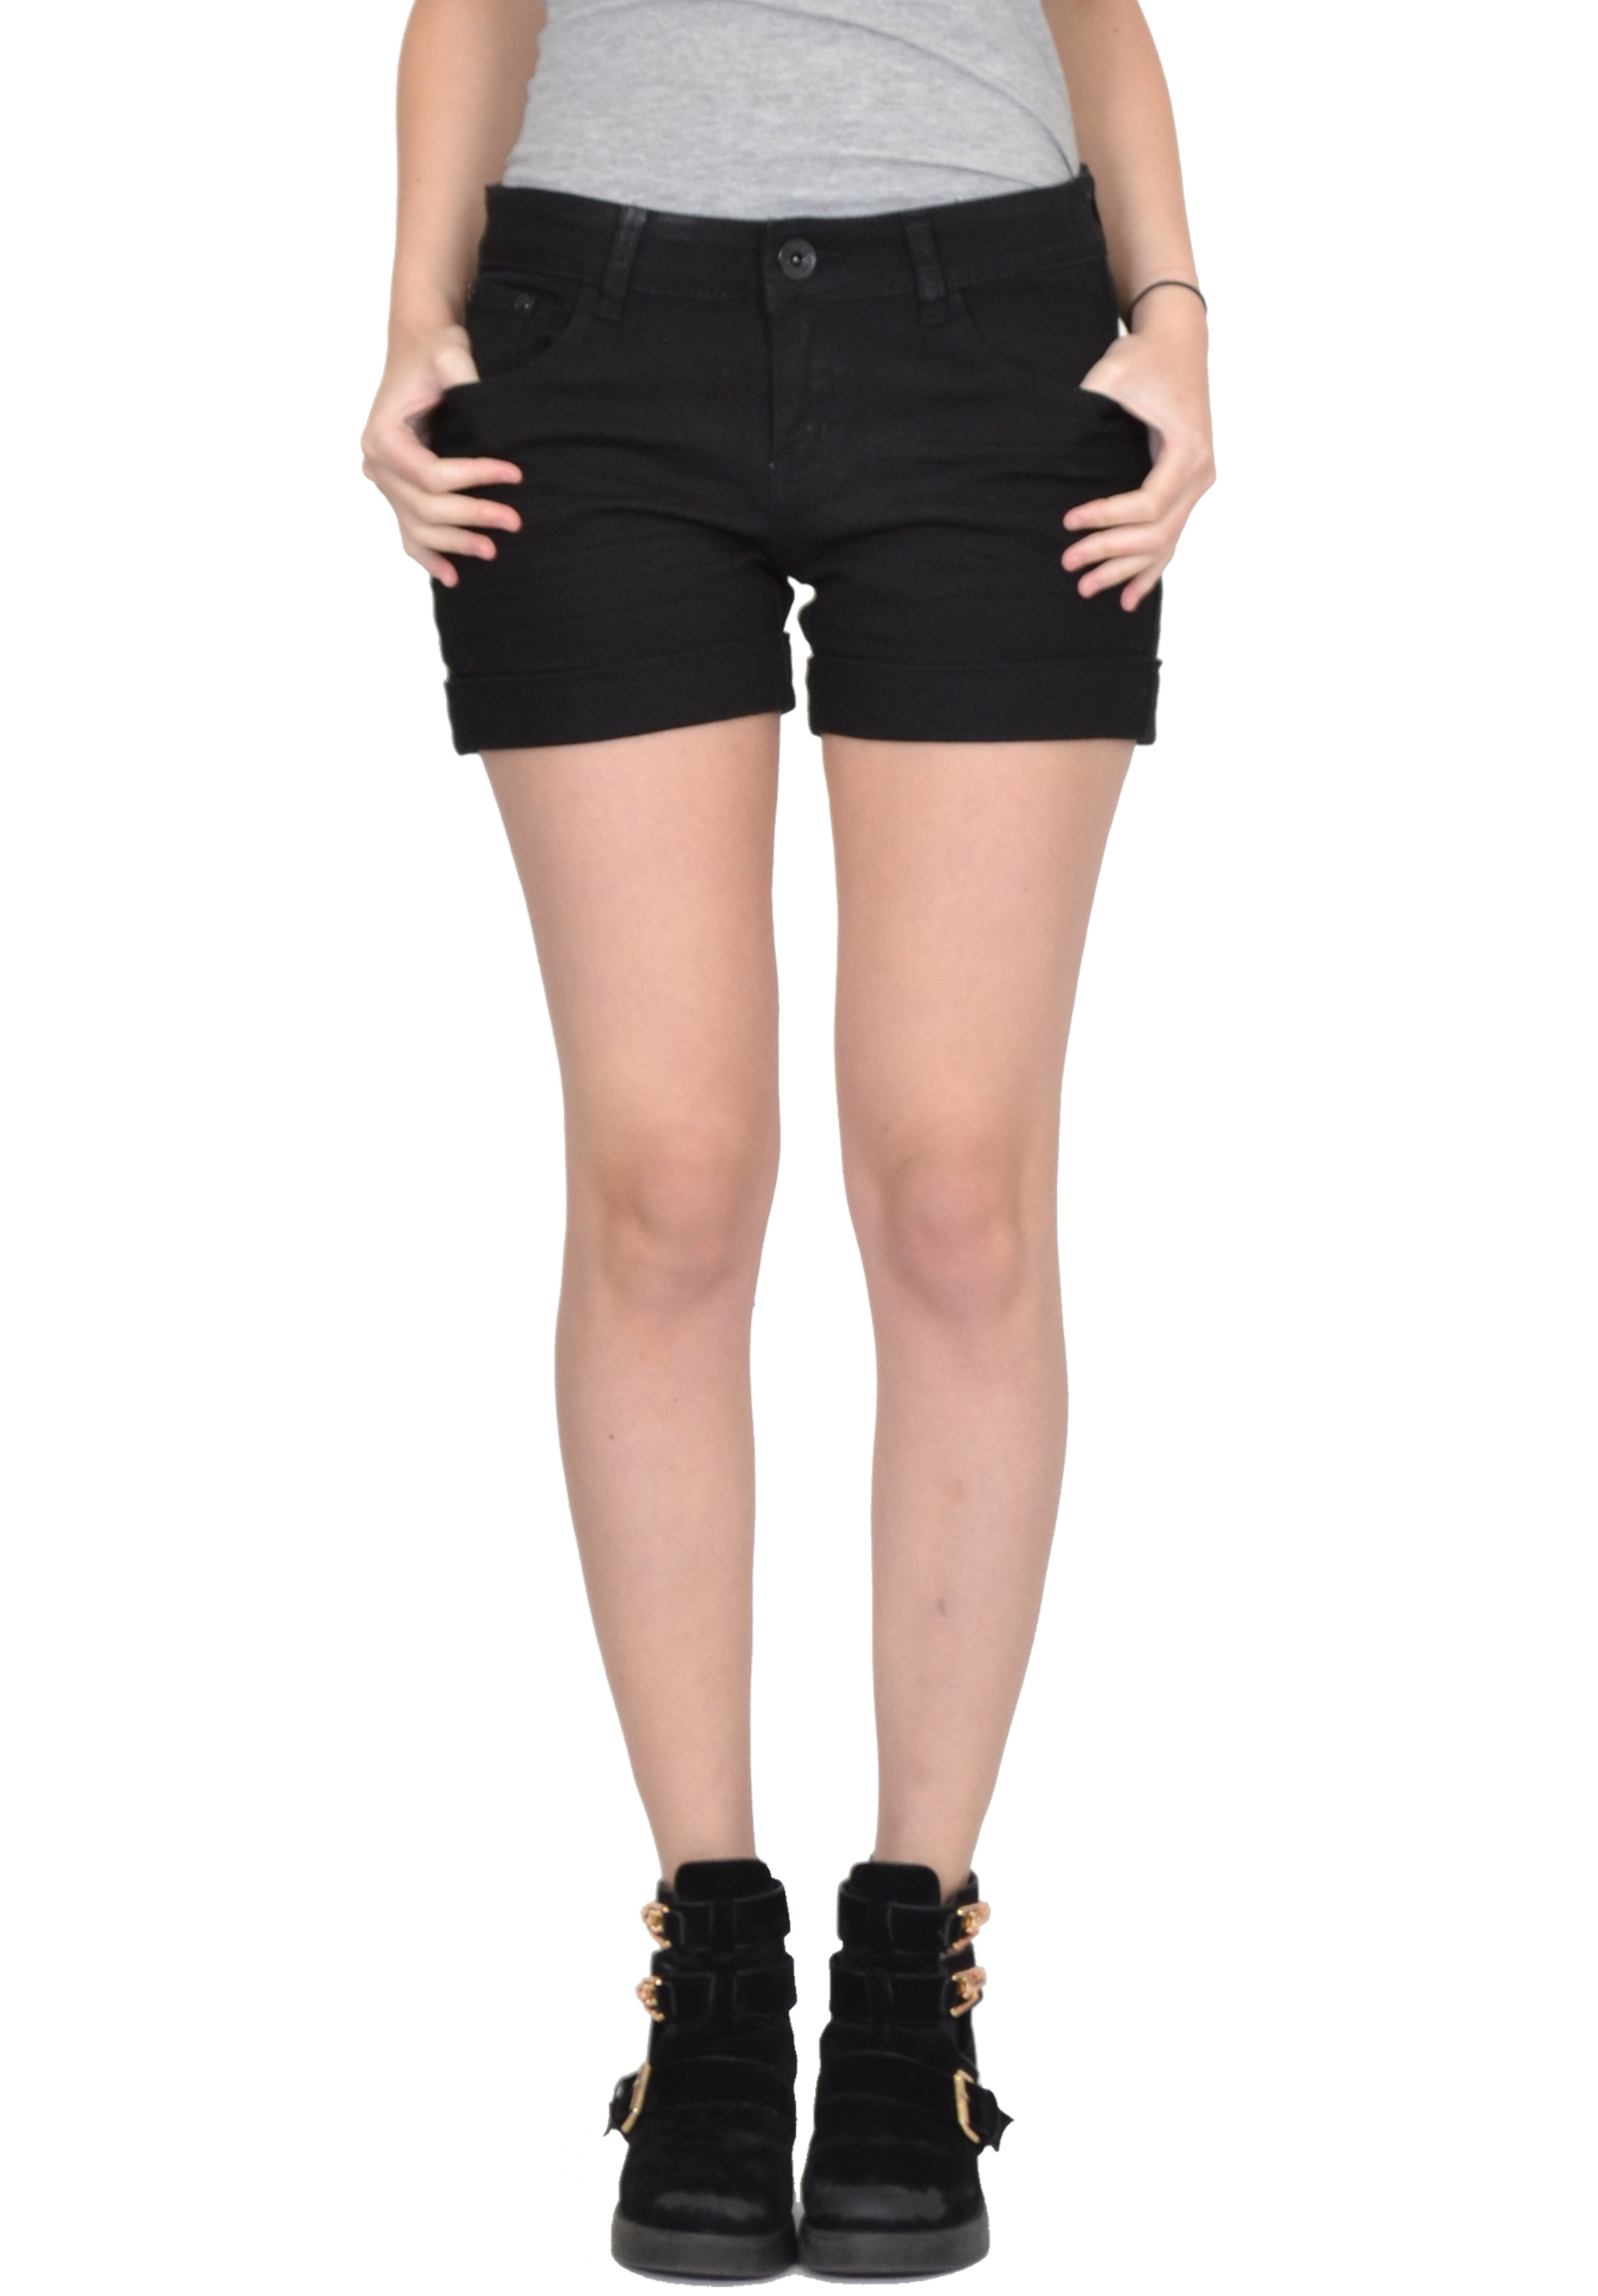 Black Ladies Shorts